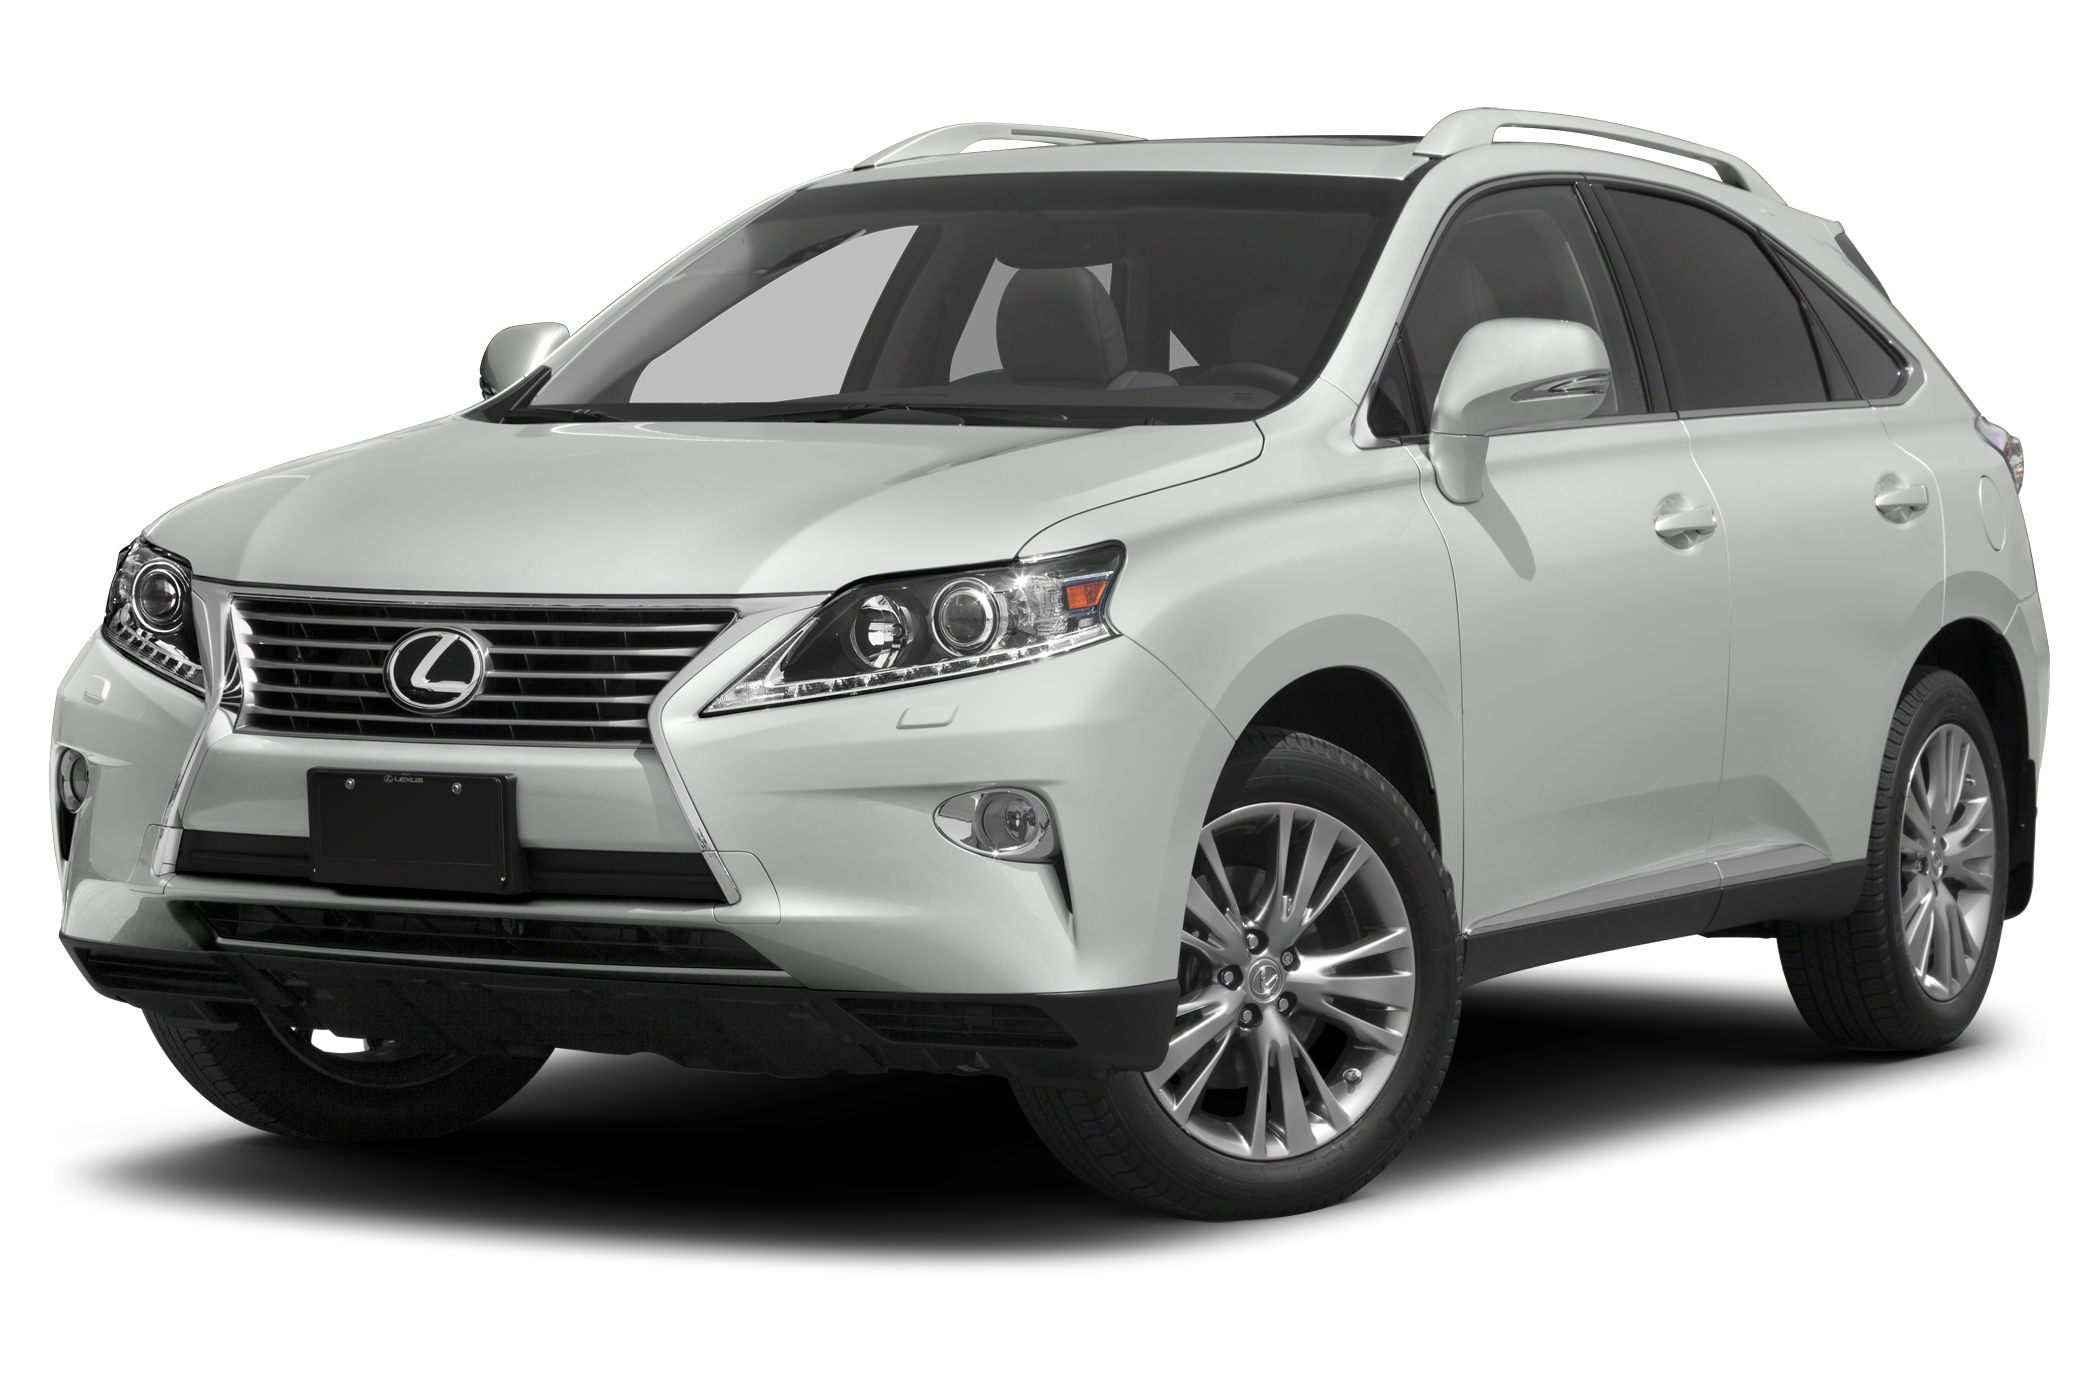 2013 Lexus RX 350 Base Vehicle Detailed Recent Oil Change and Passed Dealer Inspection Tried an